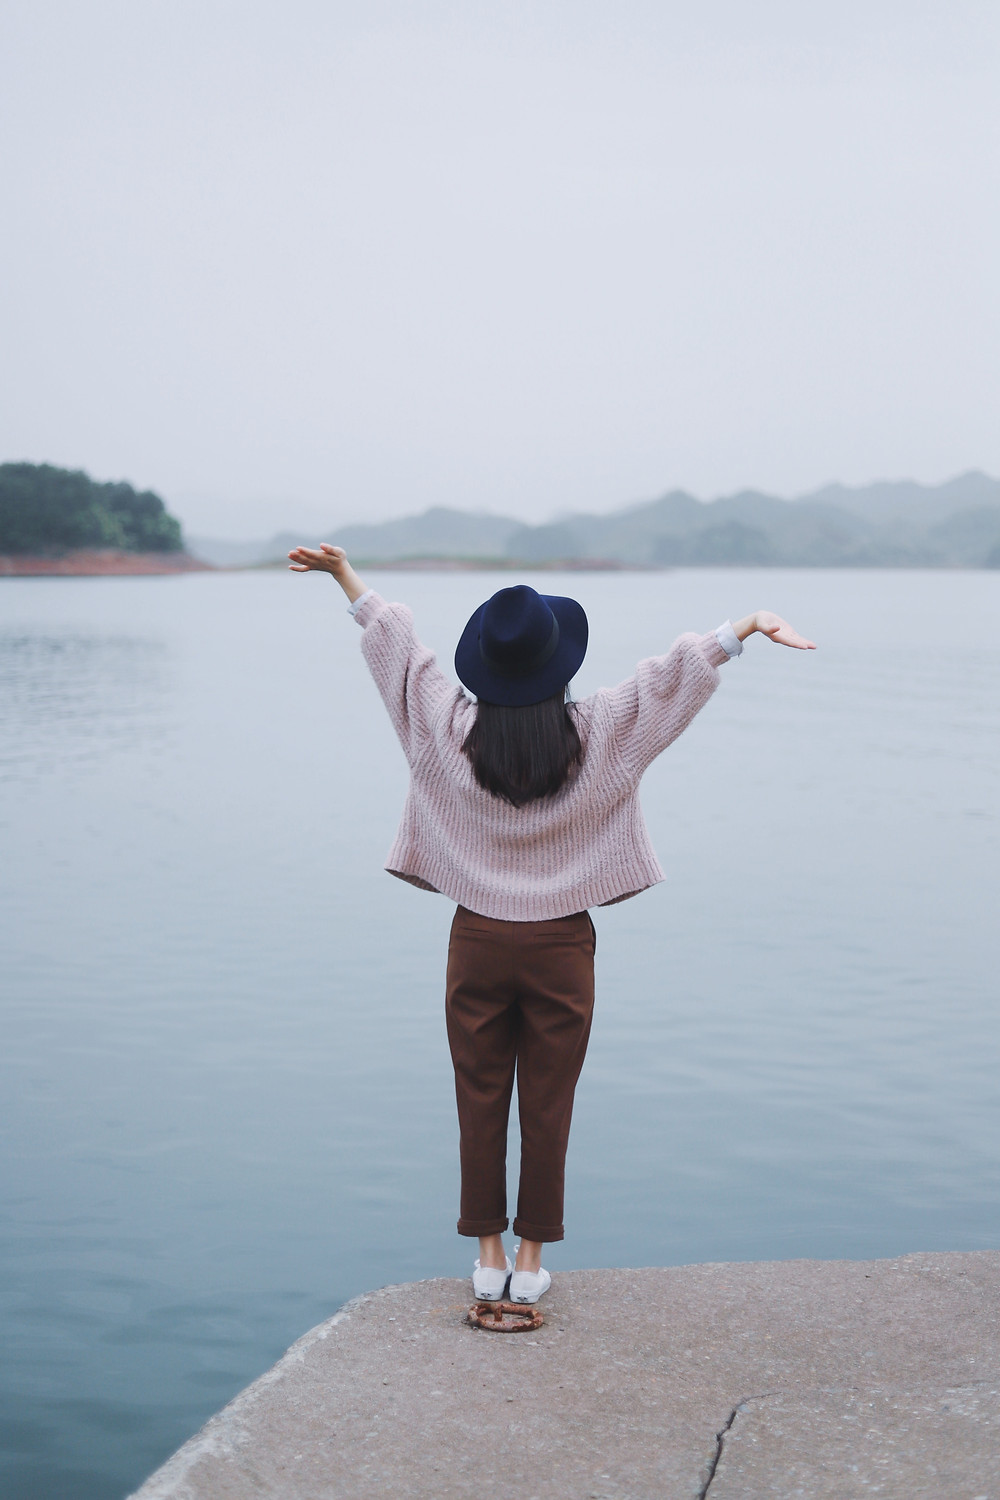 Girl looking out over water with hands up